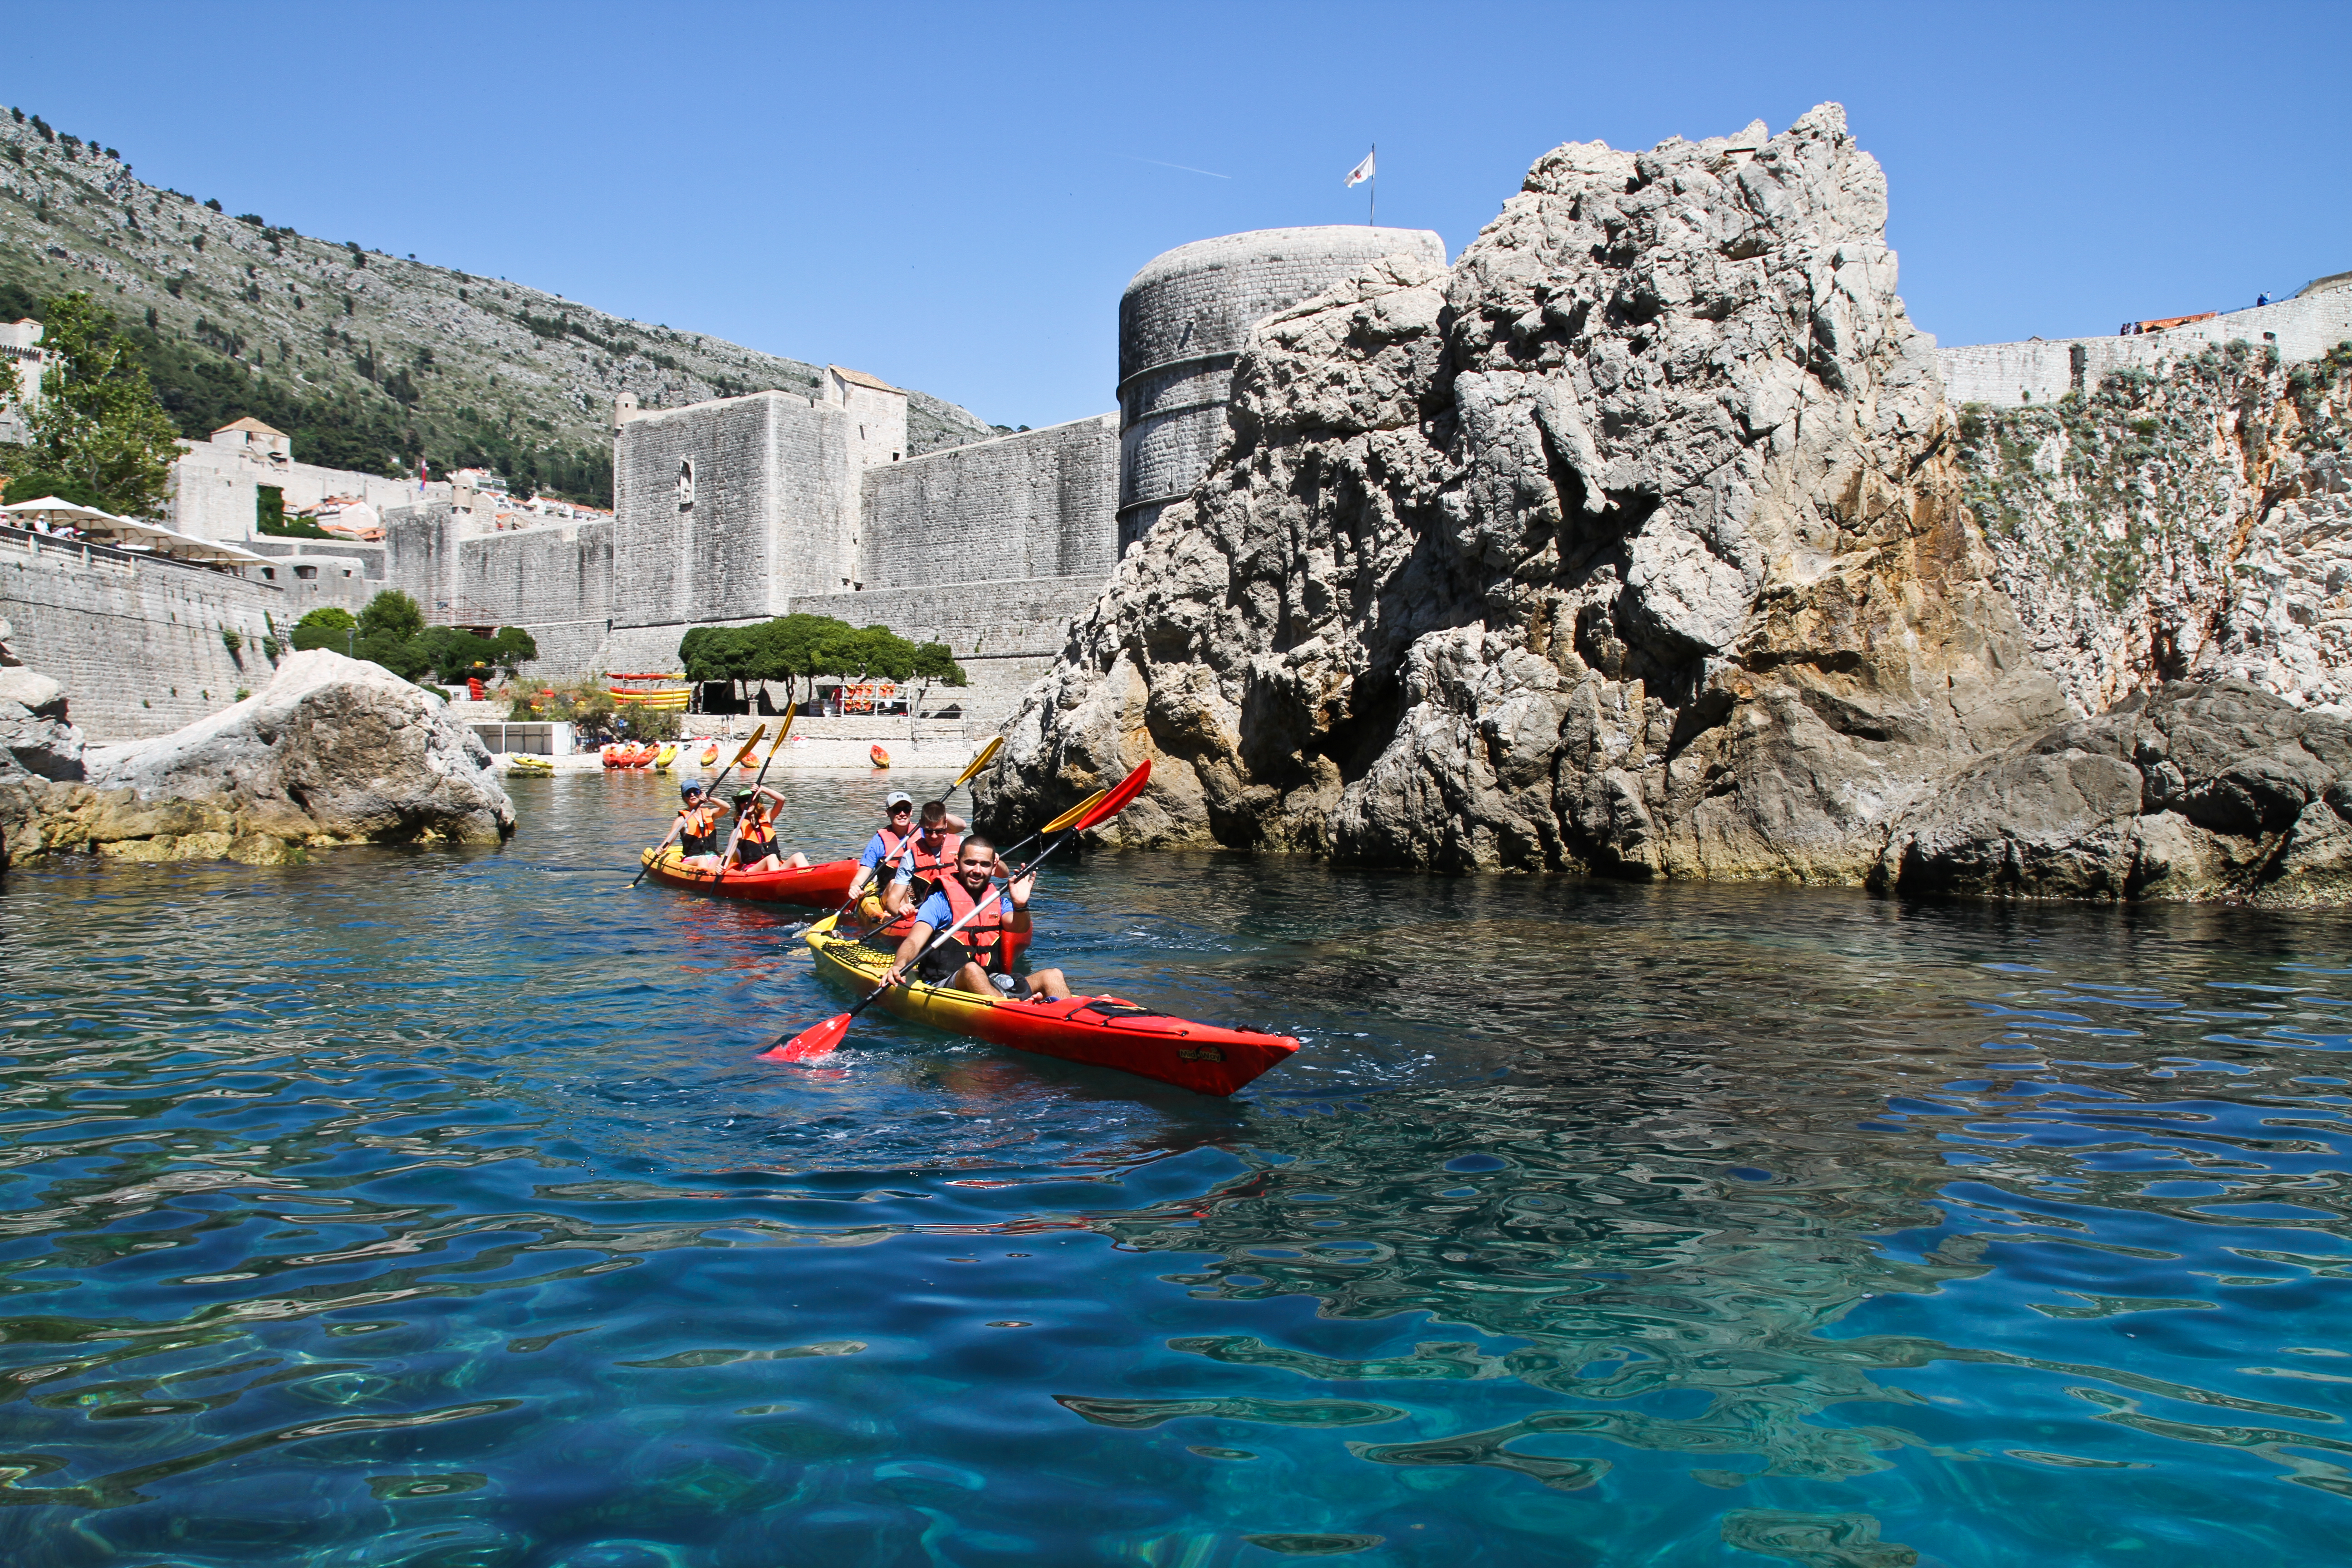 Discover dubrovnik old town guided walking tour - Special October Offer Sea Kayaking 20 Off Was 230 Kn 32